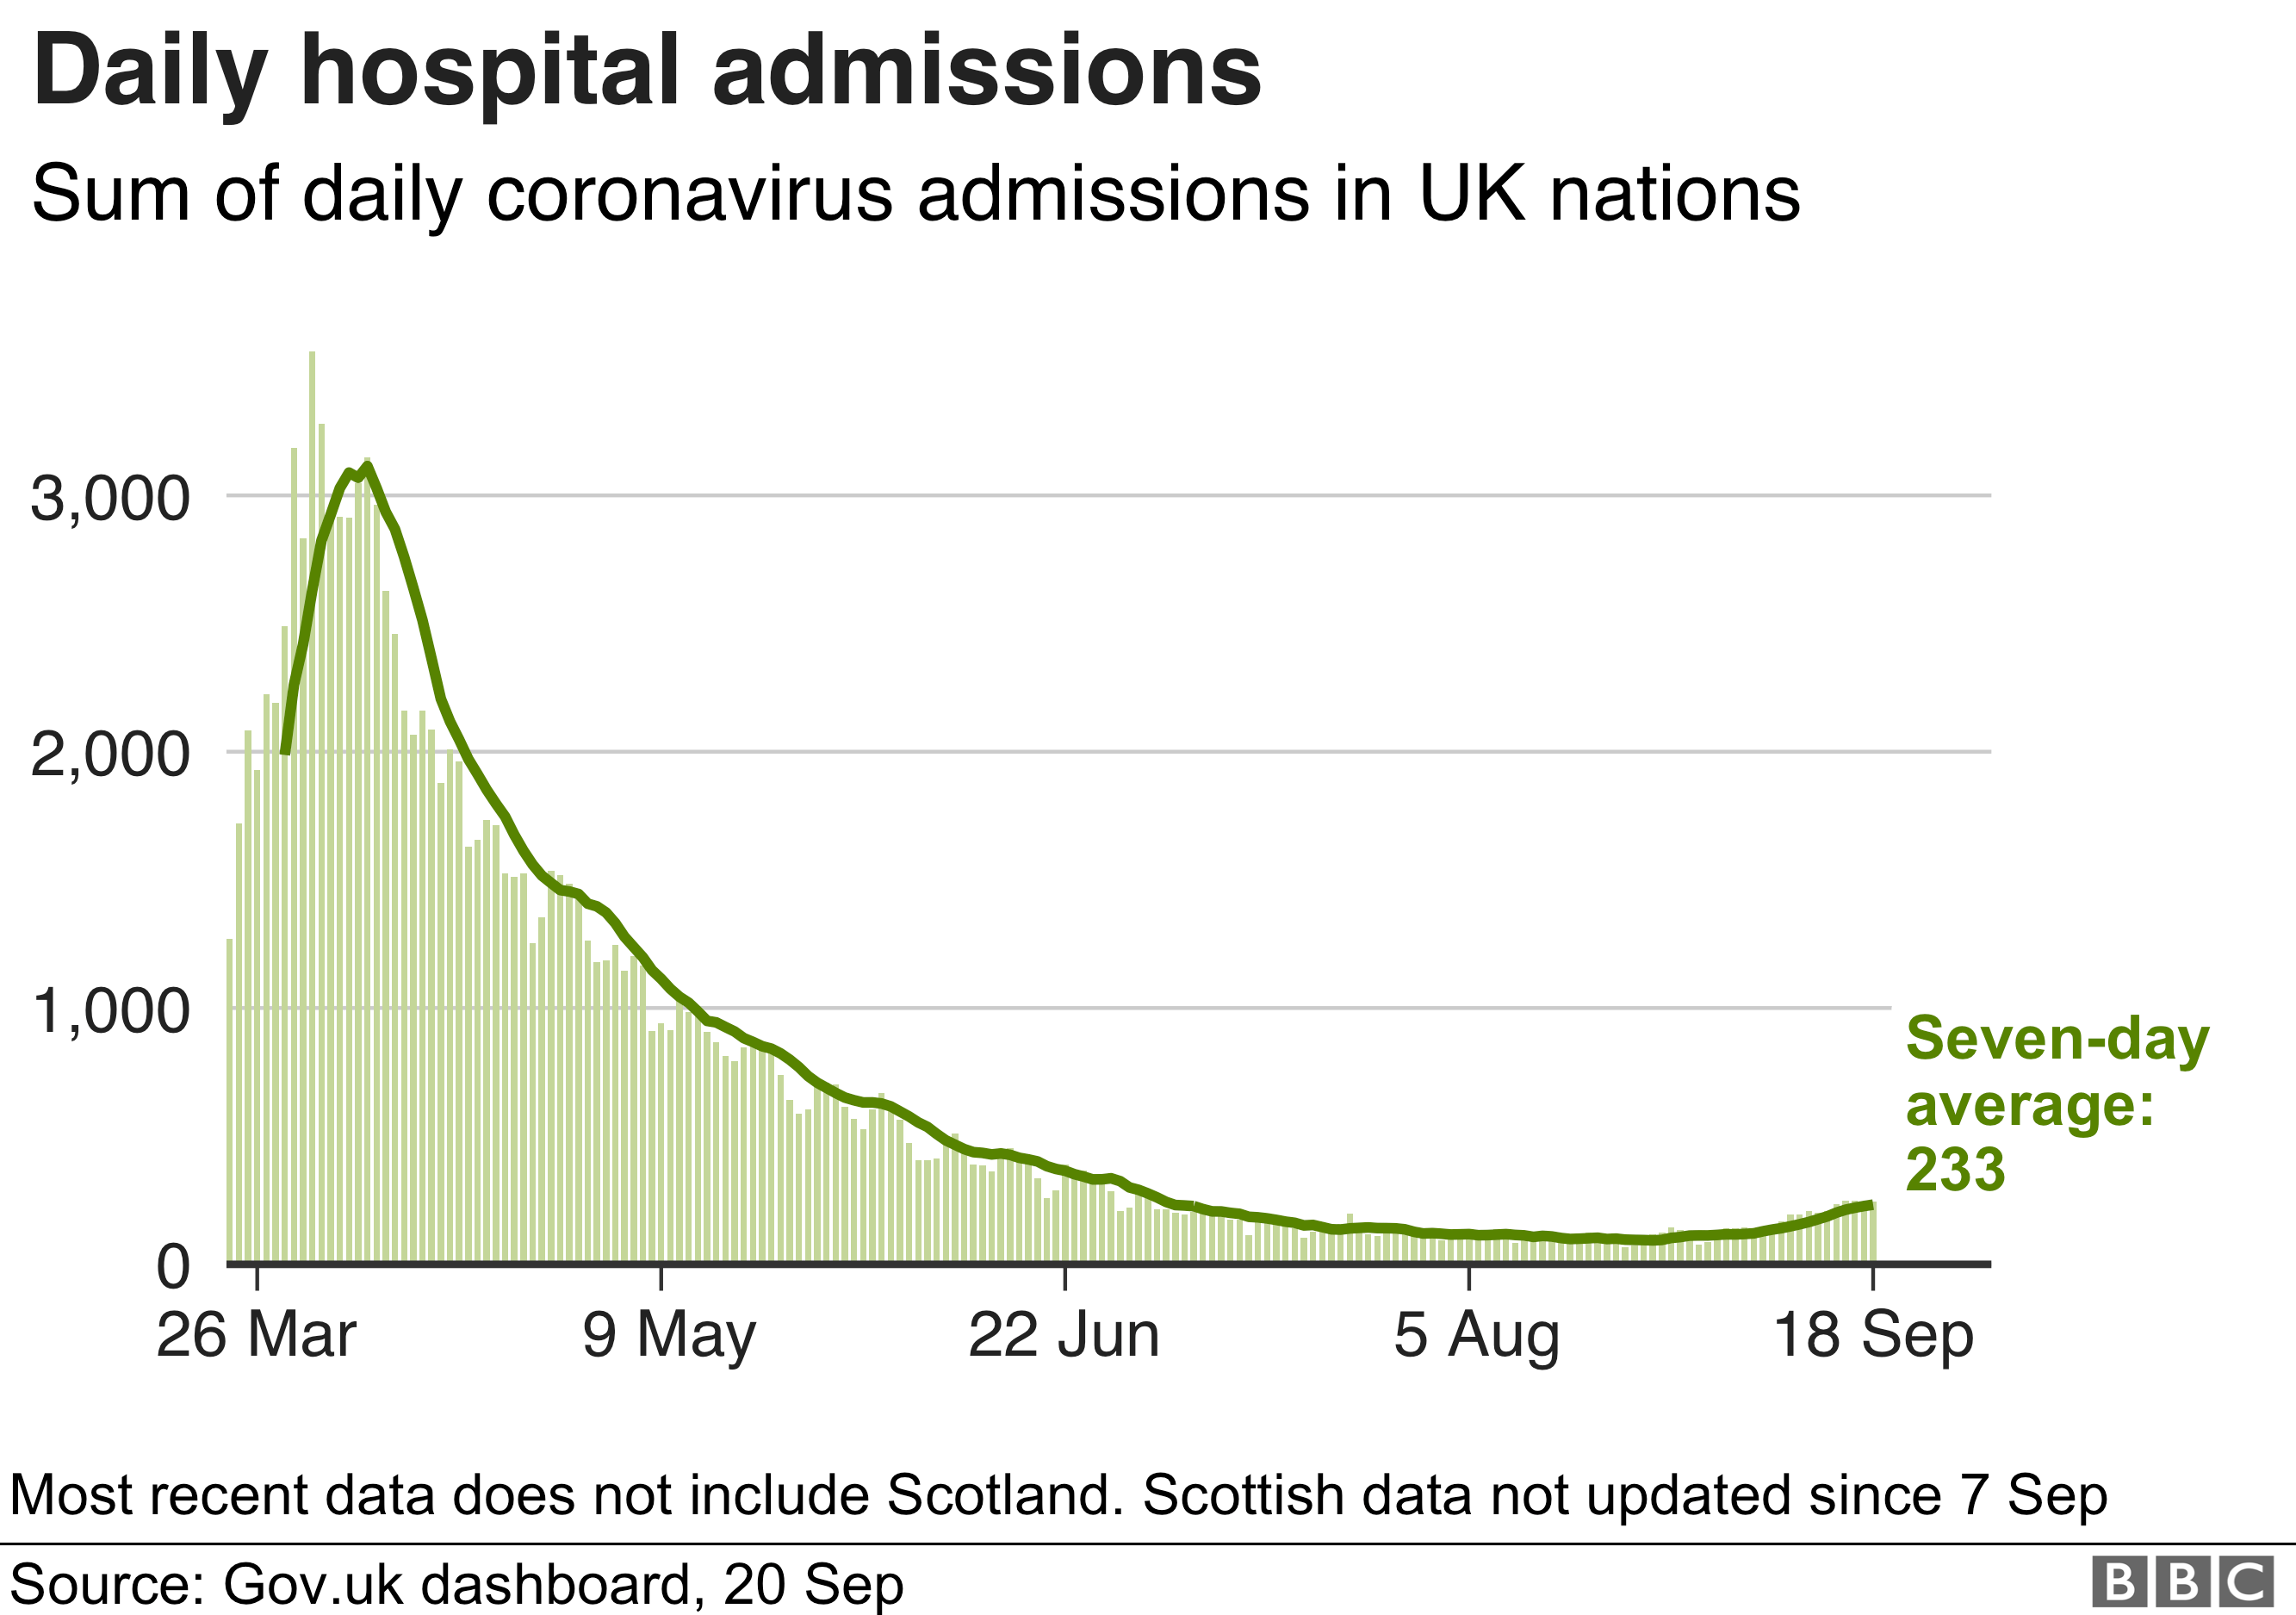 Graph showing daily hospital admissions